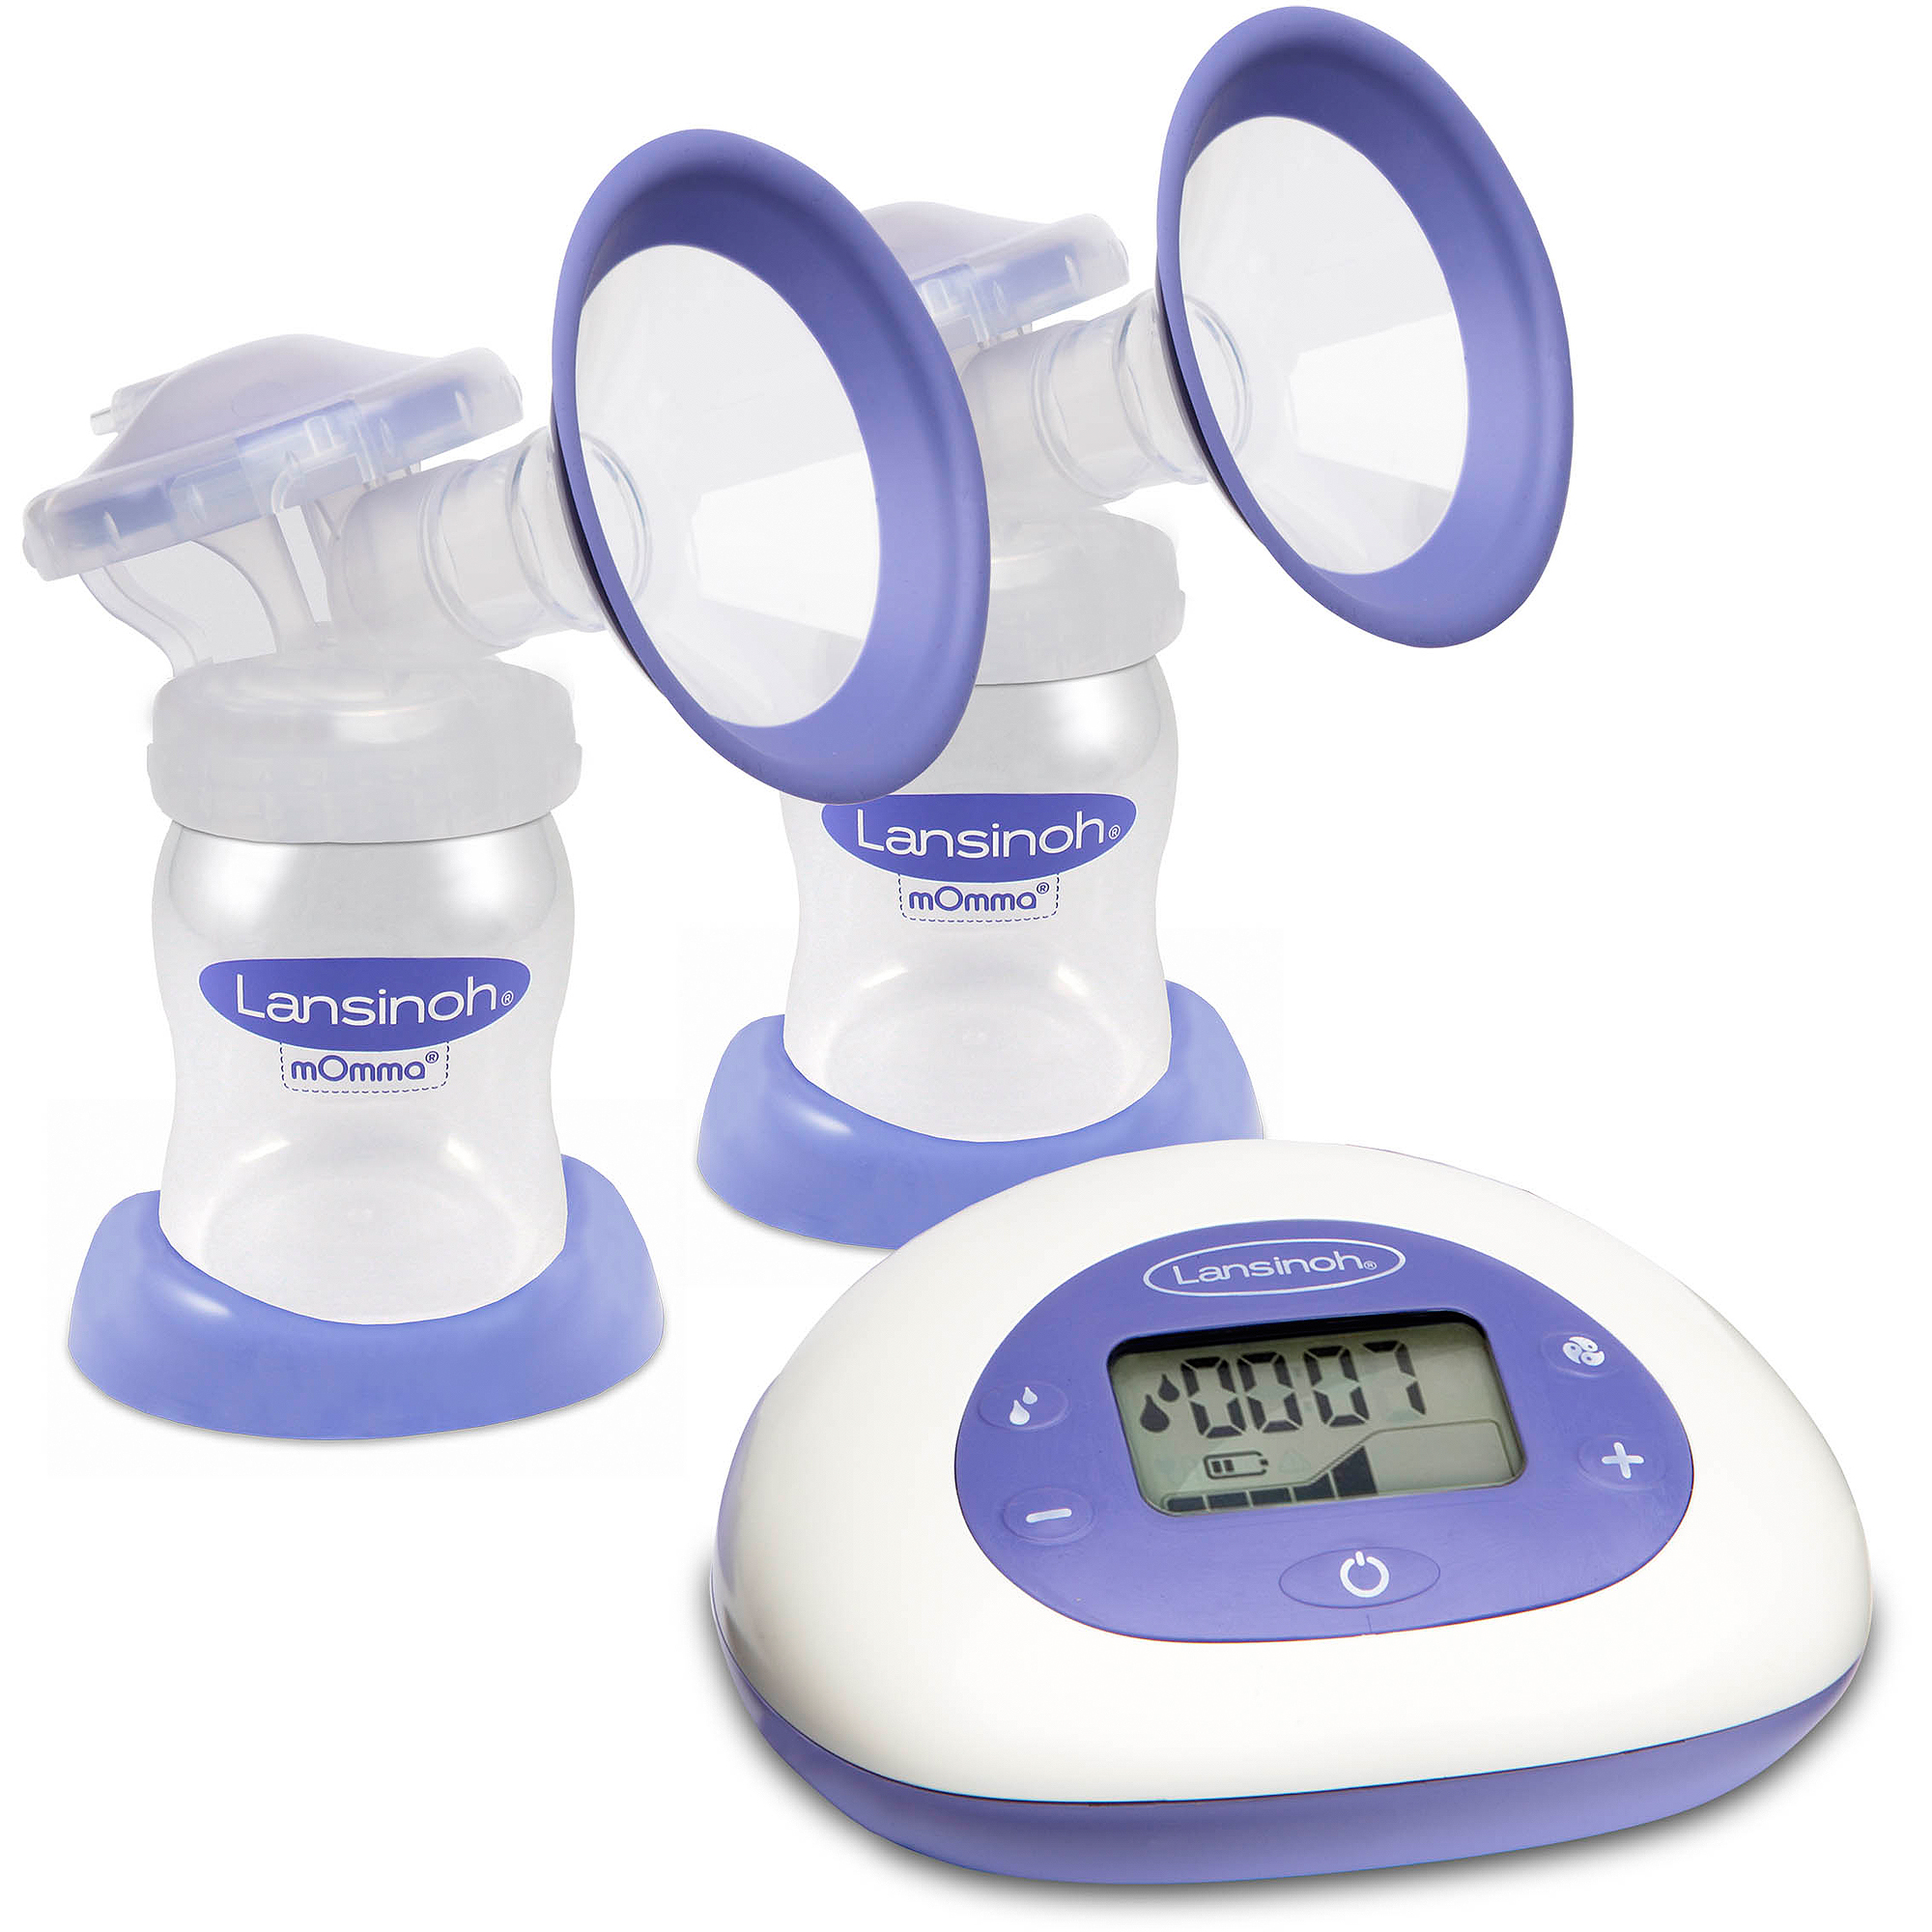 Lansinoh Signature Pro Double Electric Breast Pump, 1 Pump and Accessories